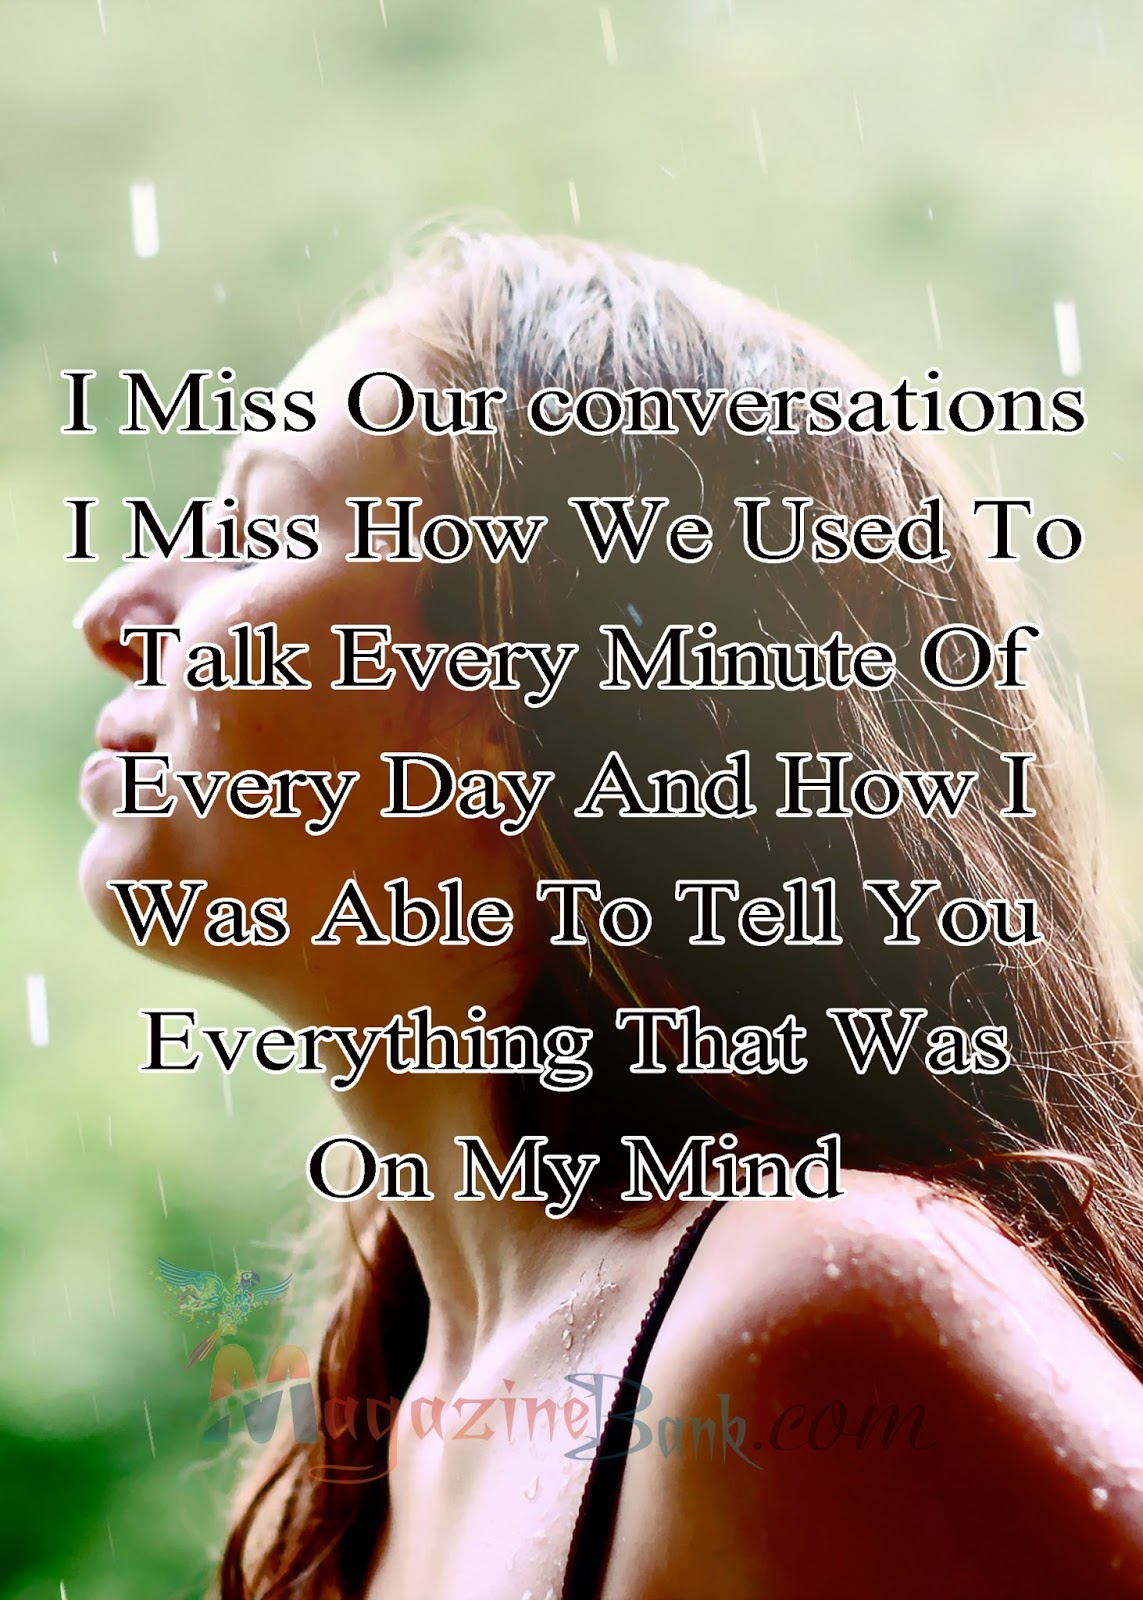 Sad Love Quotes For Him That Make You Cry: Sad Love Quotes For Her. QuotesGram